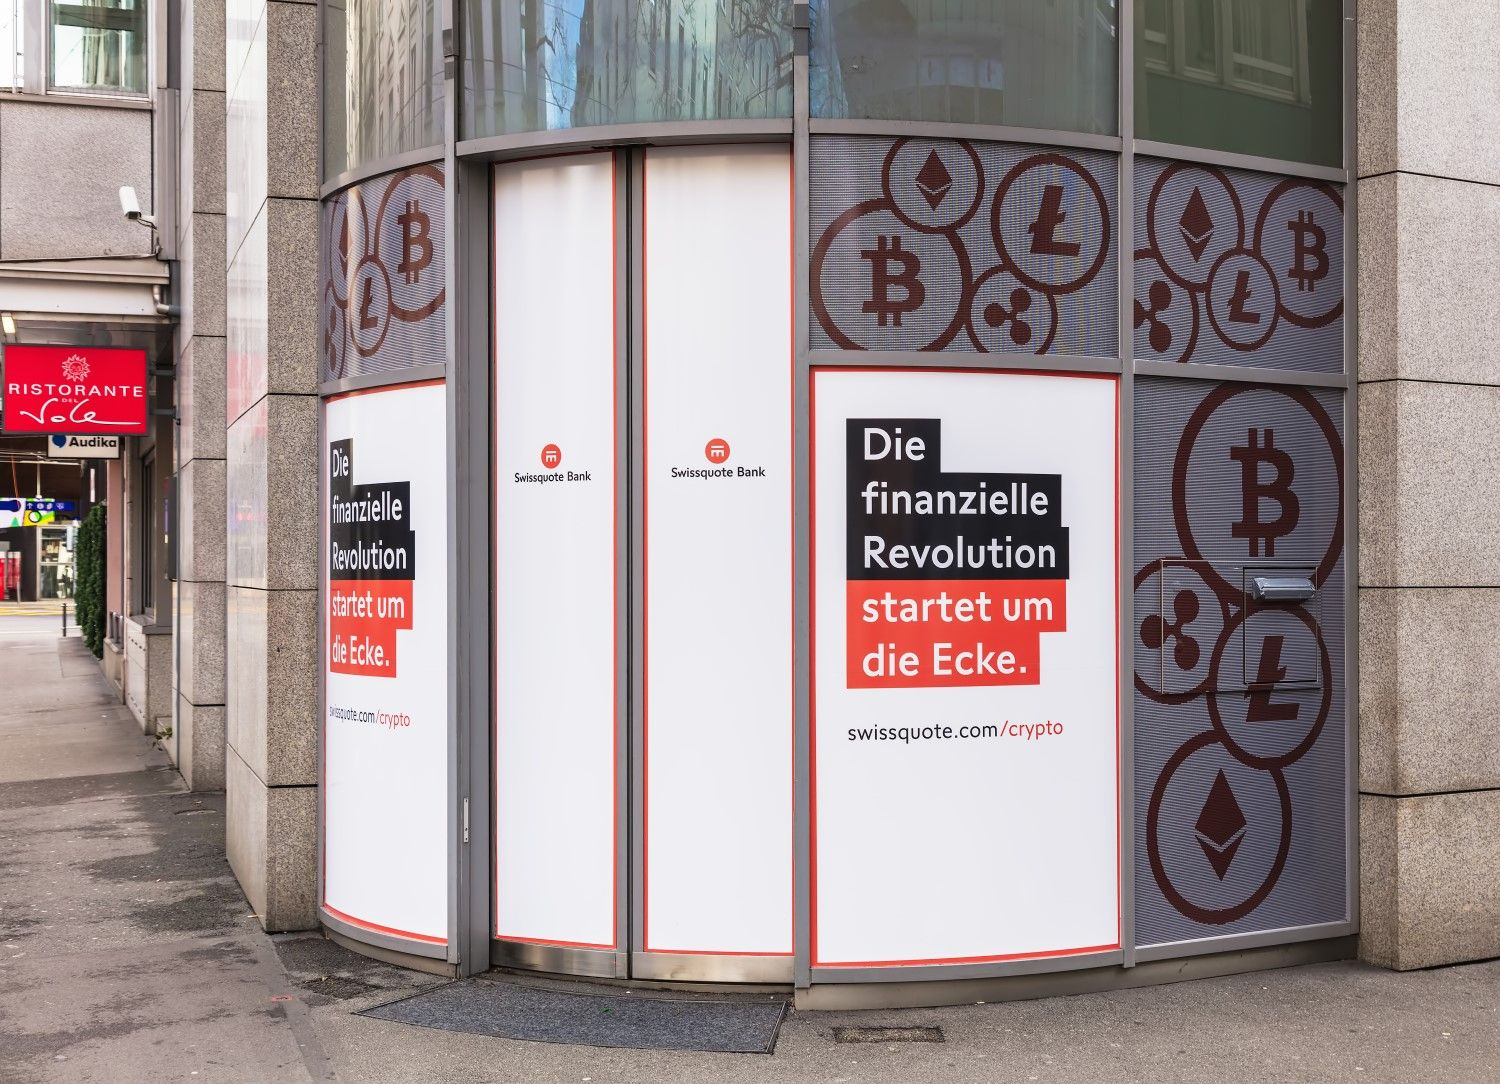 Online Banking And Trading Group Swissquote Is Launching A Crypto Custody Service Later This Month The Switzerland B Cryptocurrency Bitcoin Banking Services